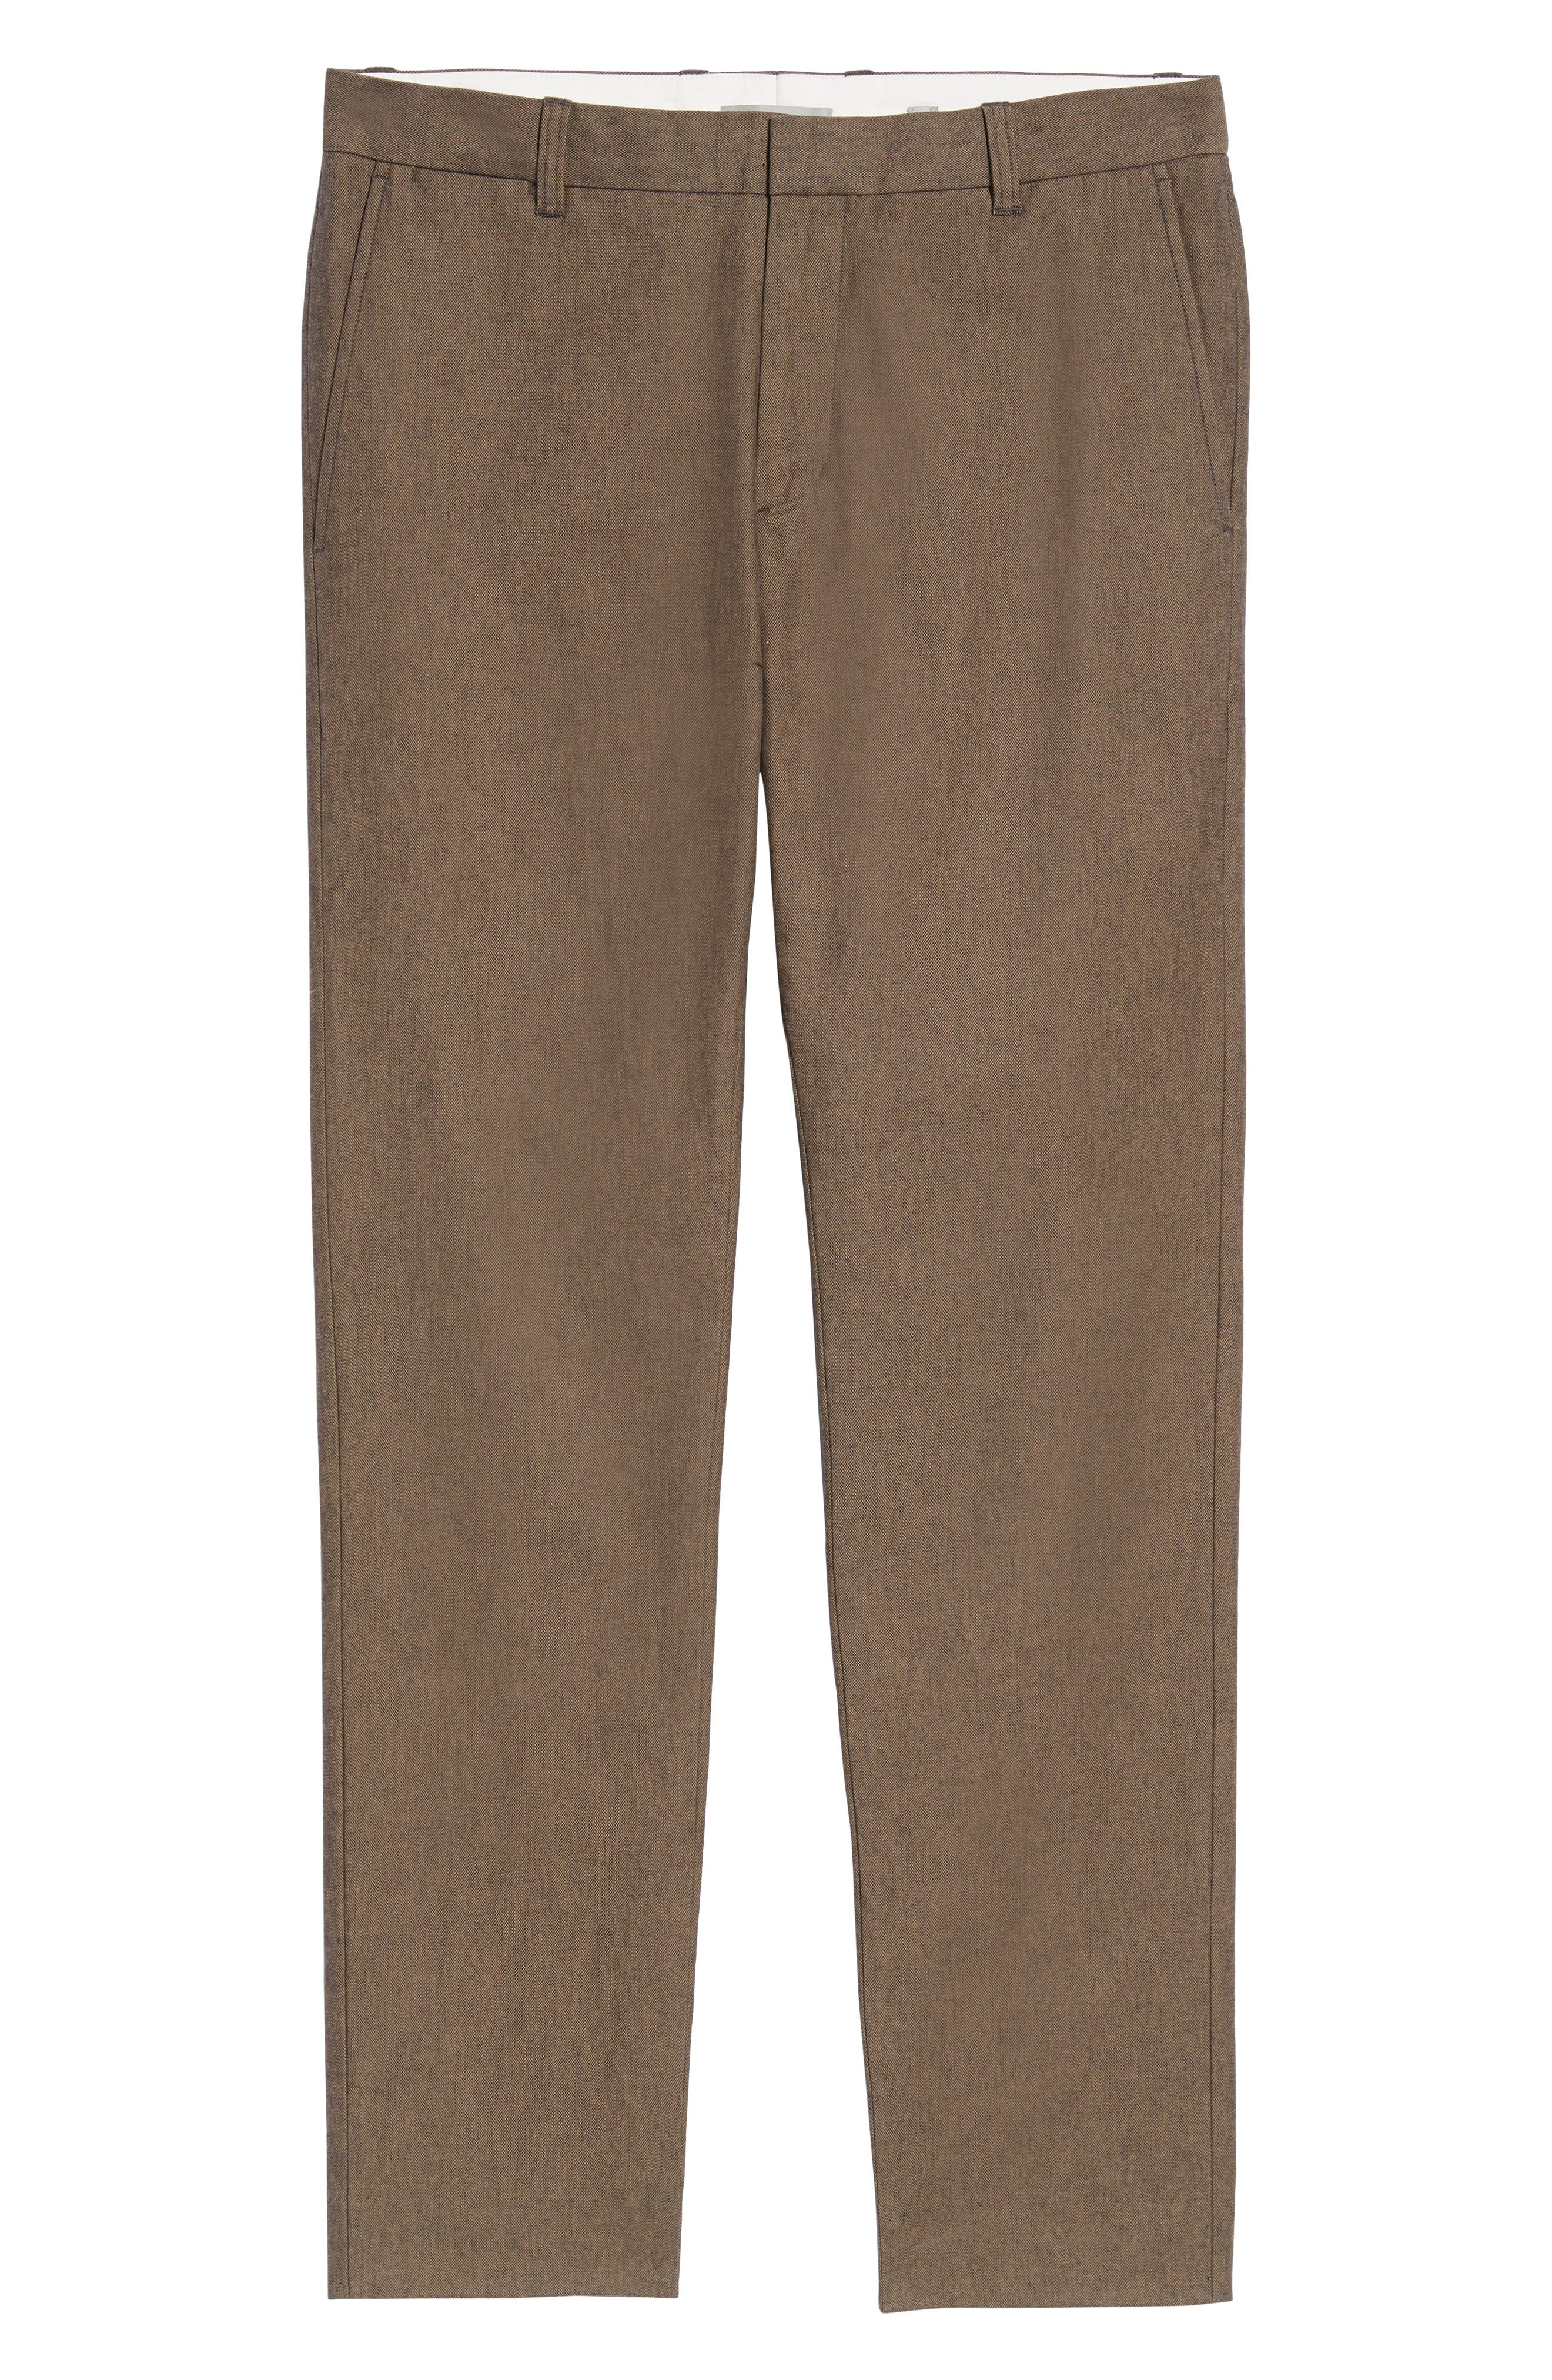 Griffith Slim Fit Chinos,                             Alternate thumbnail 6, color,                             OAK